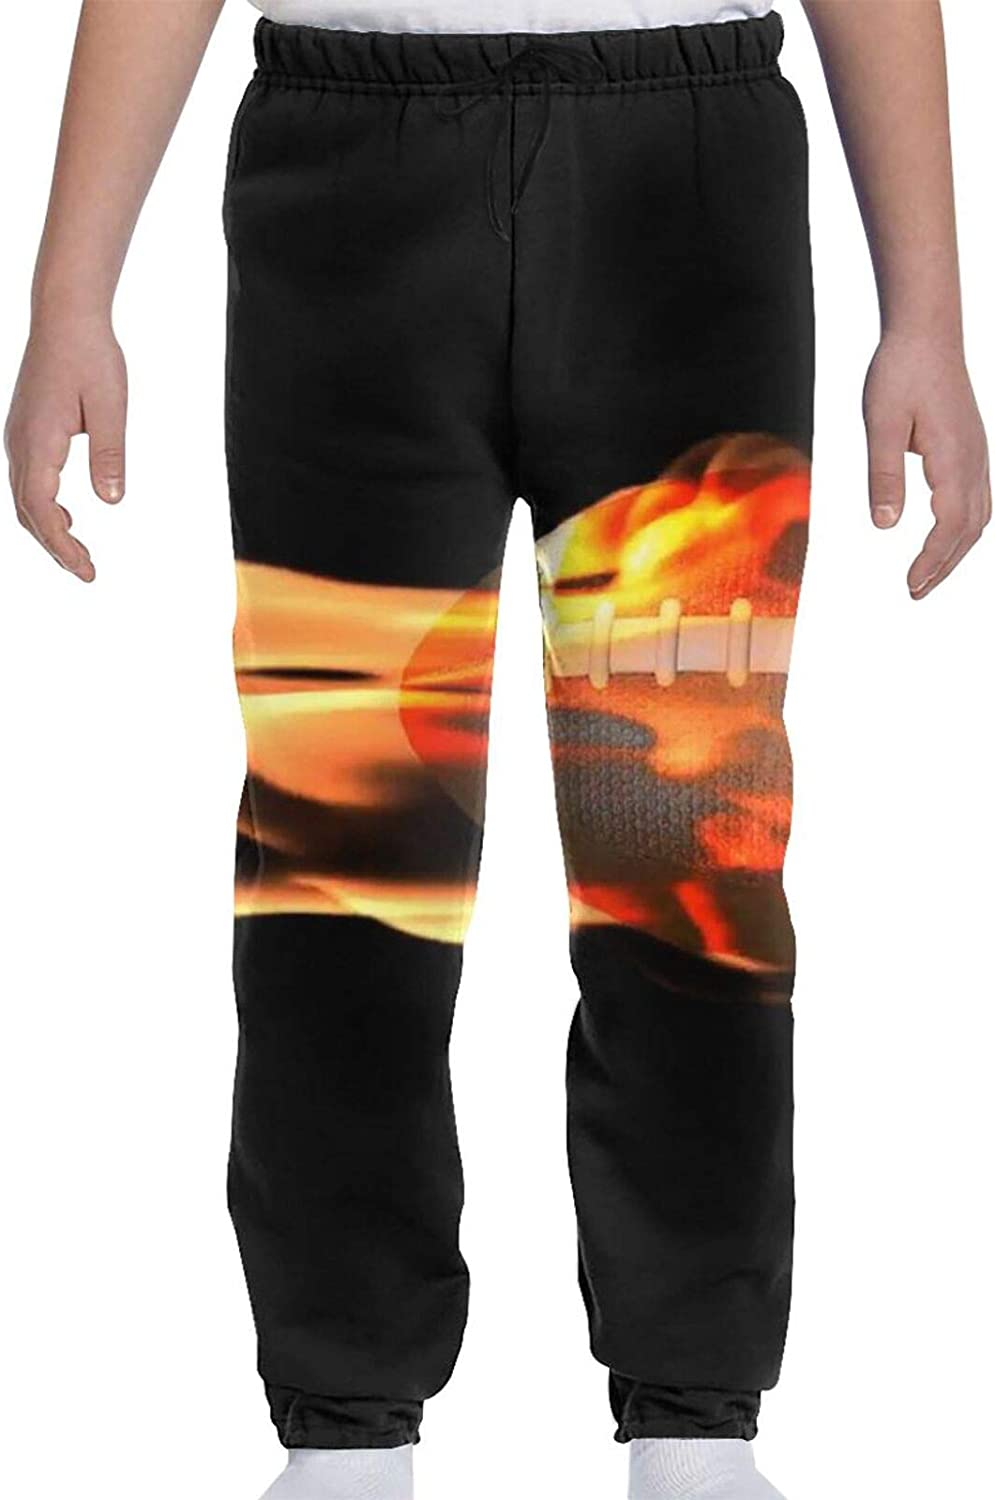 Oomato Ant Youth Sweatpants 3D Cheap bargain Max 78% OFF Trousers Teens Boys Print Girls